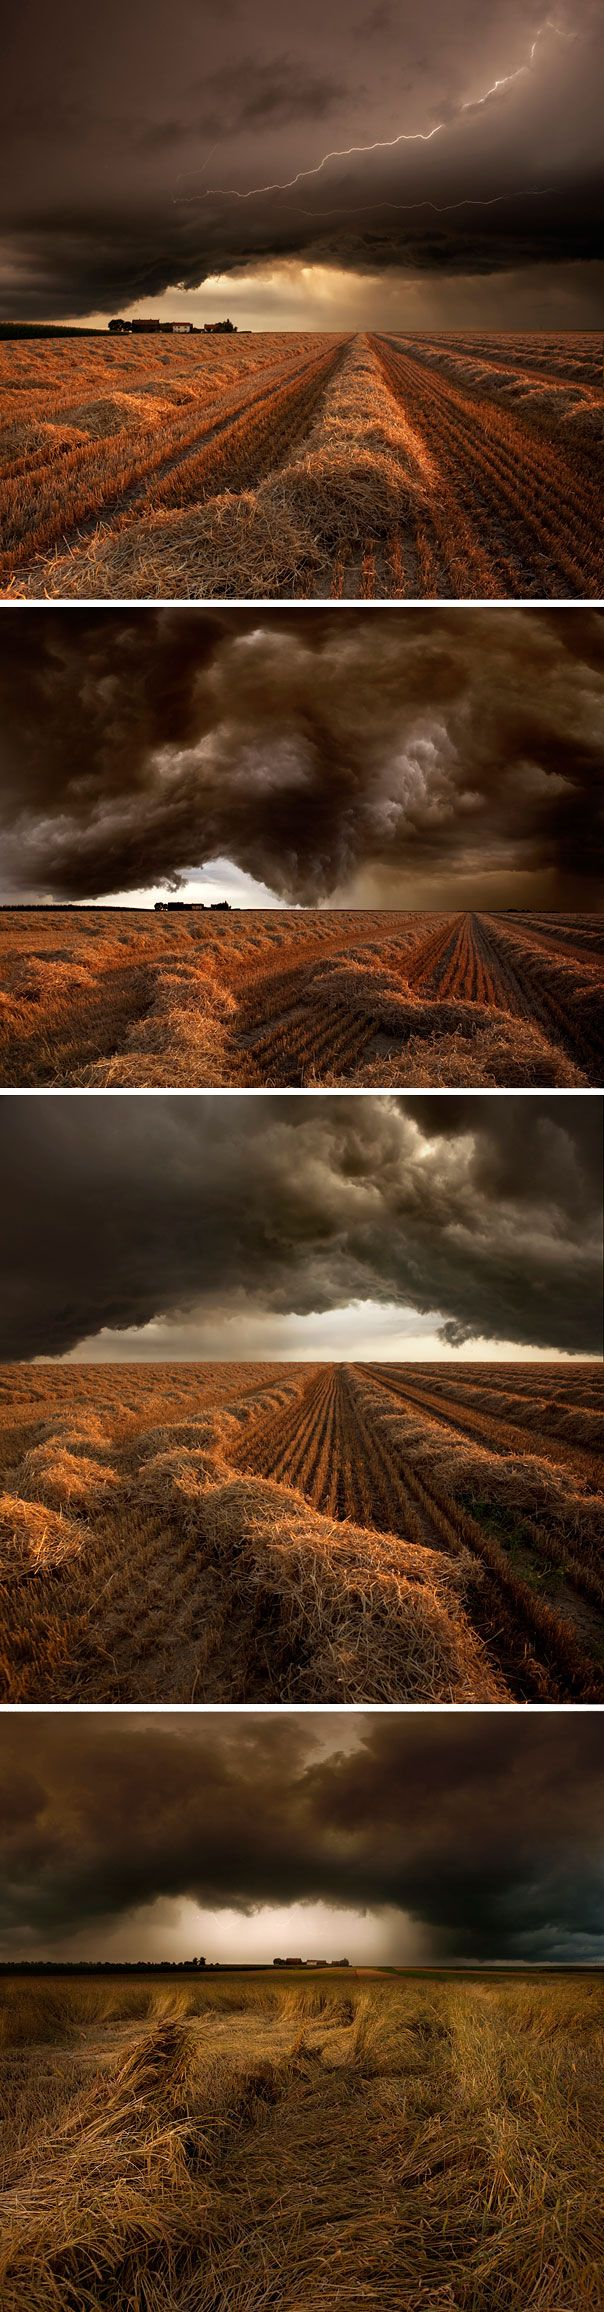 58 best TUMBLEWEED AMAZING VIREVOLETANT images on Pinterest